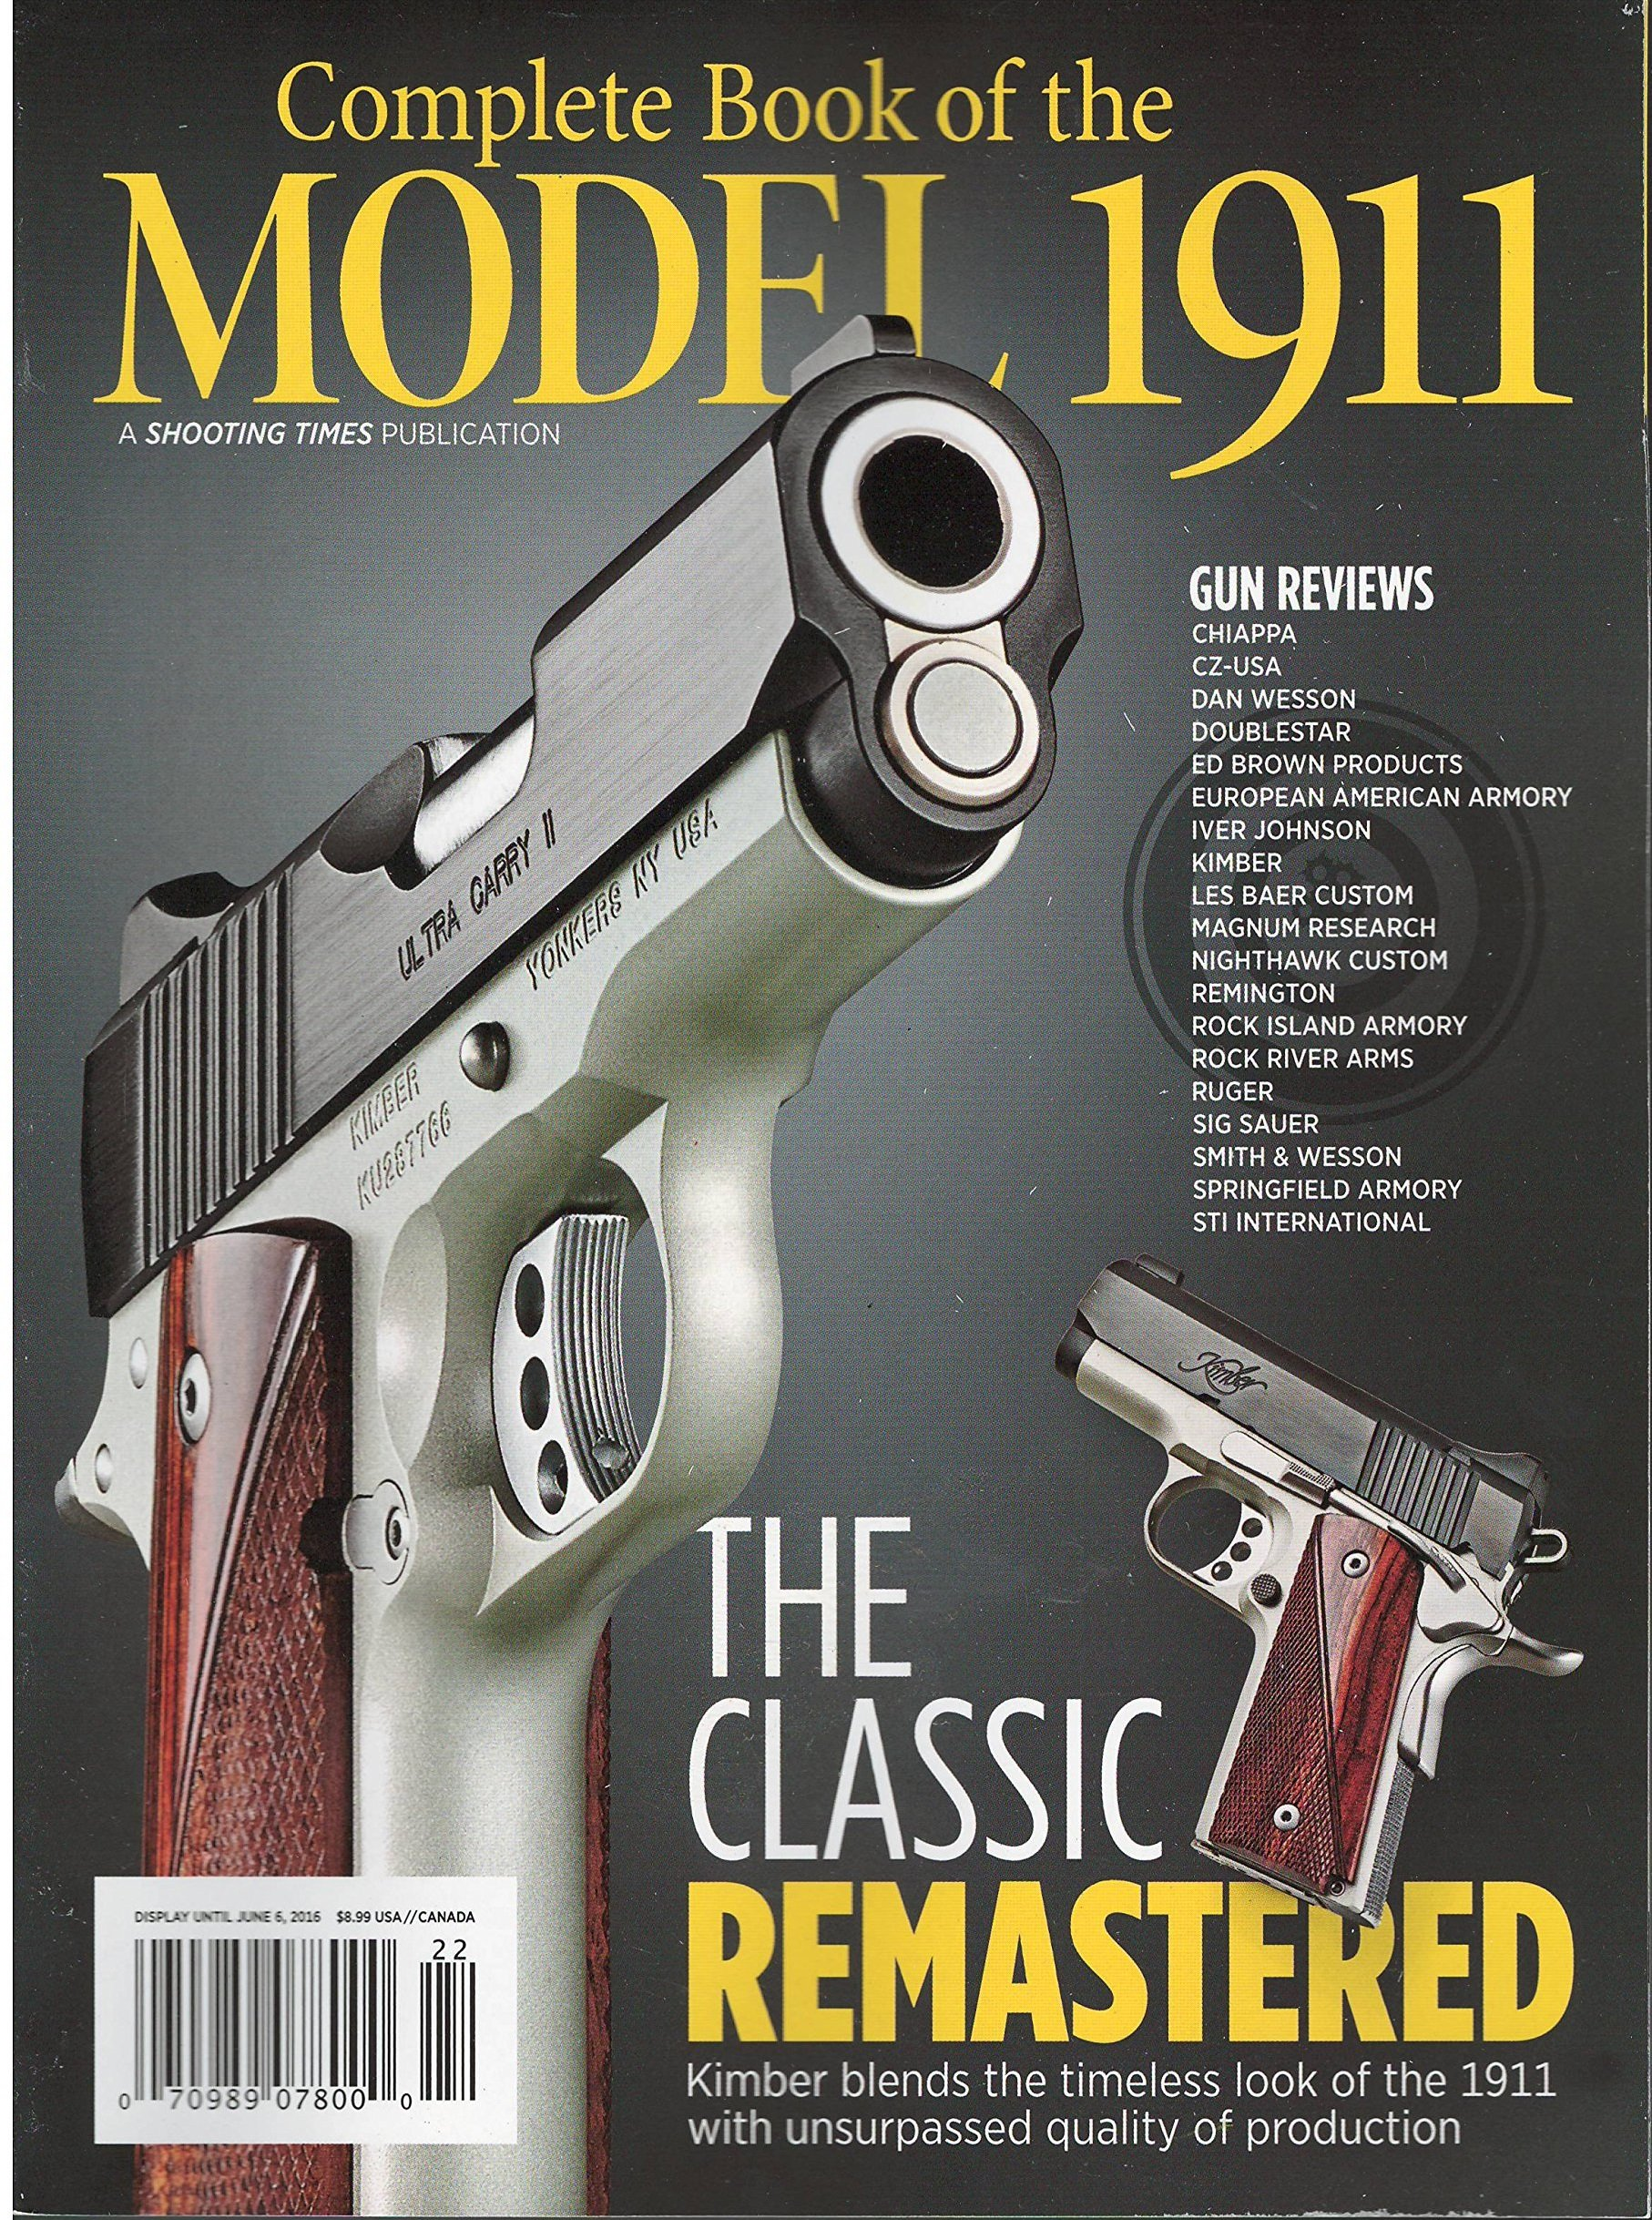 Complete book of the model 1911 Shooting Times 2016: Amazon